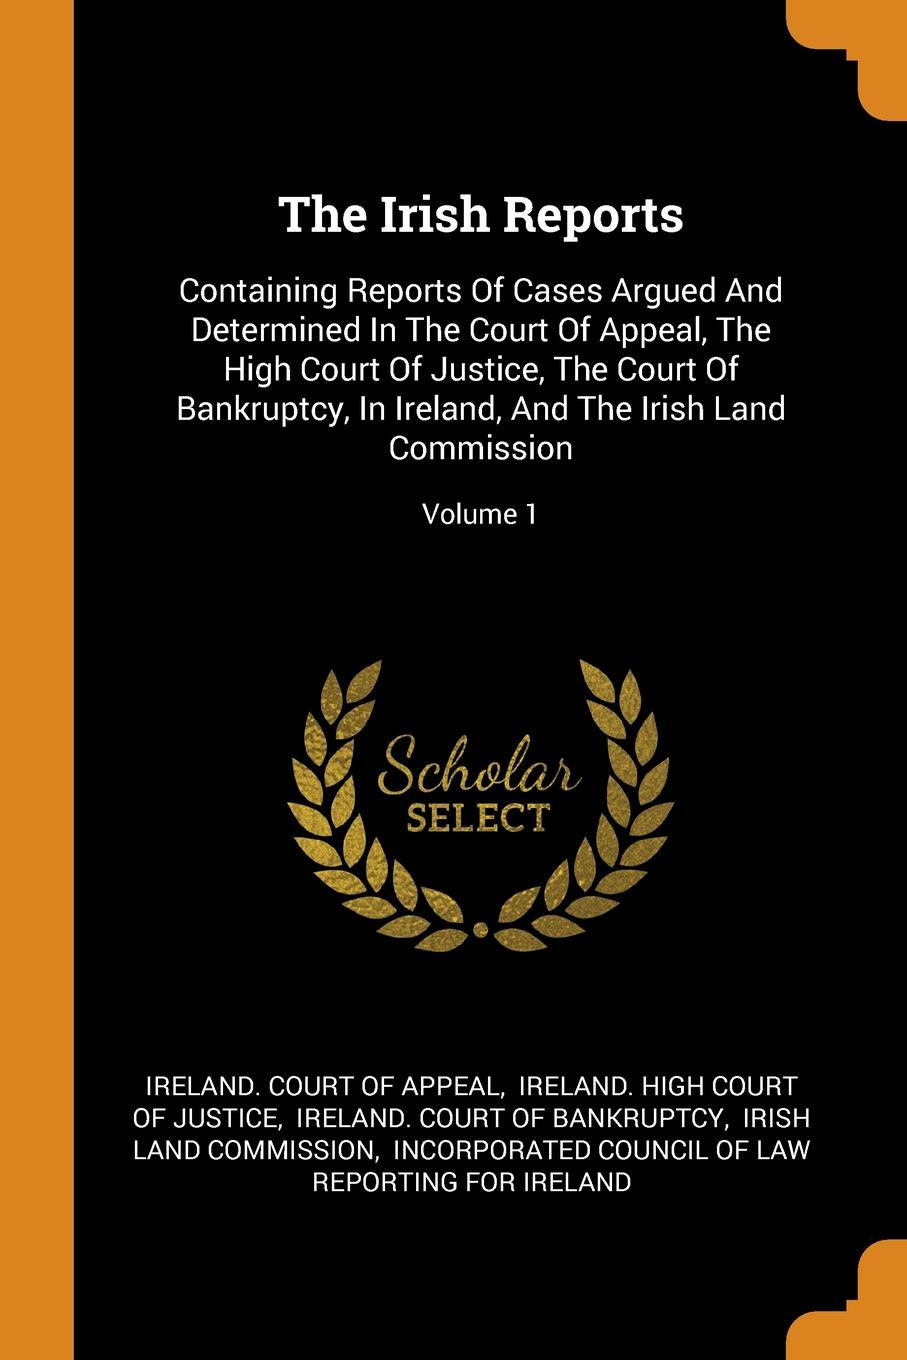 The Irish Reports. Containing Reports Of Cases Argued And Determined In The Court Of Appeal, The High Court Of Justice, The Court Of Bankruptcy, In Ireland, And The Irish Land Commission; Volume 1